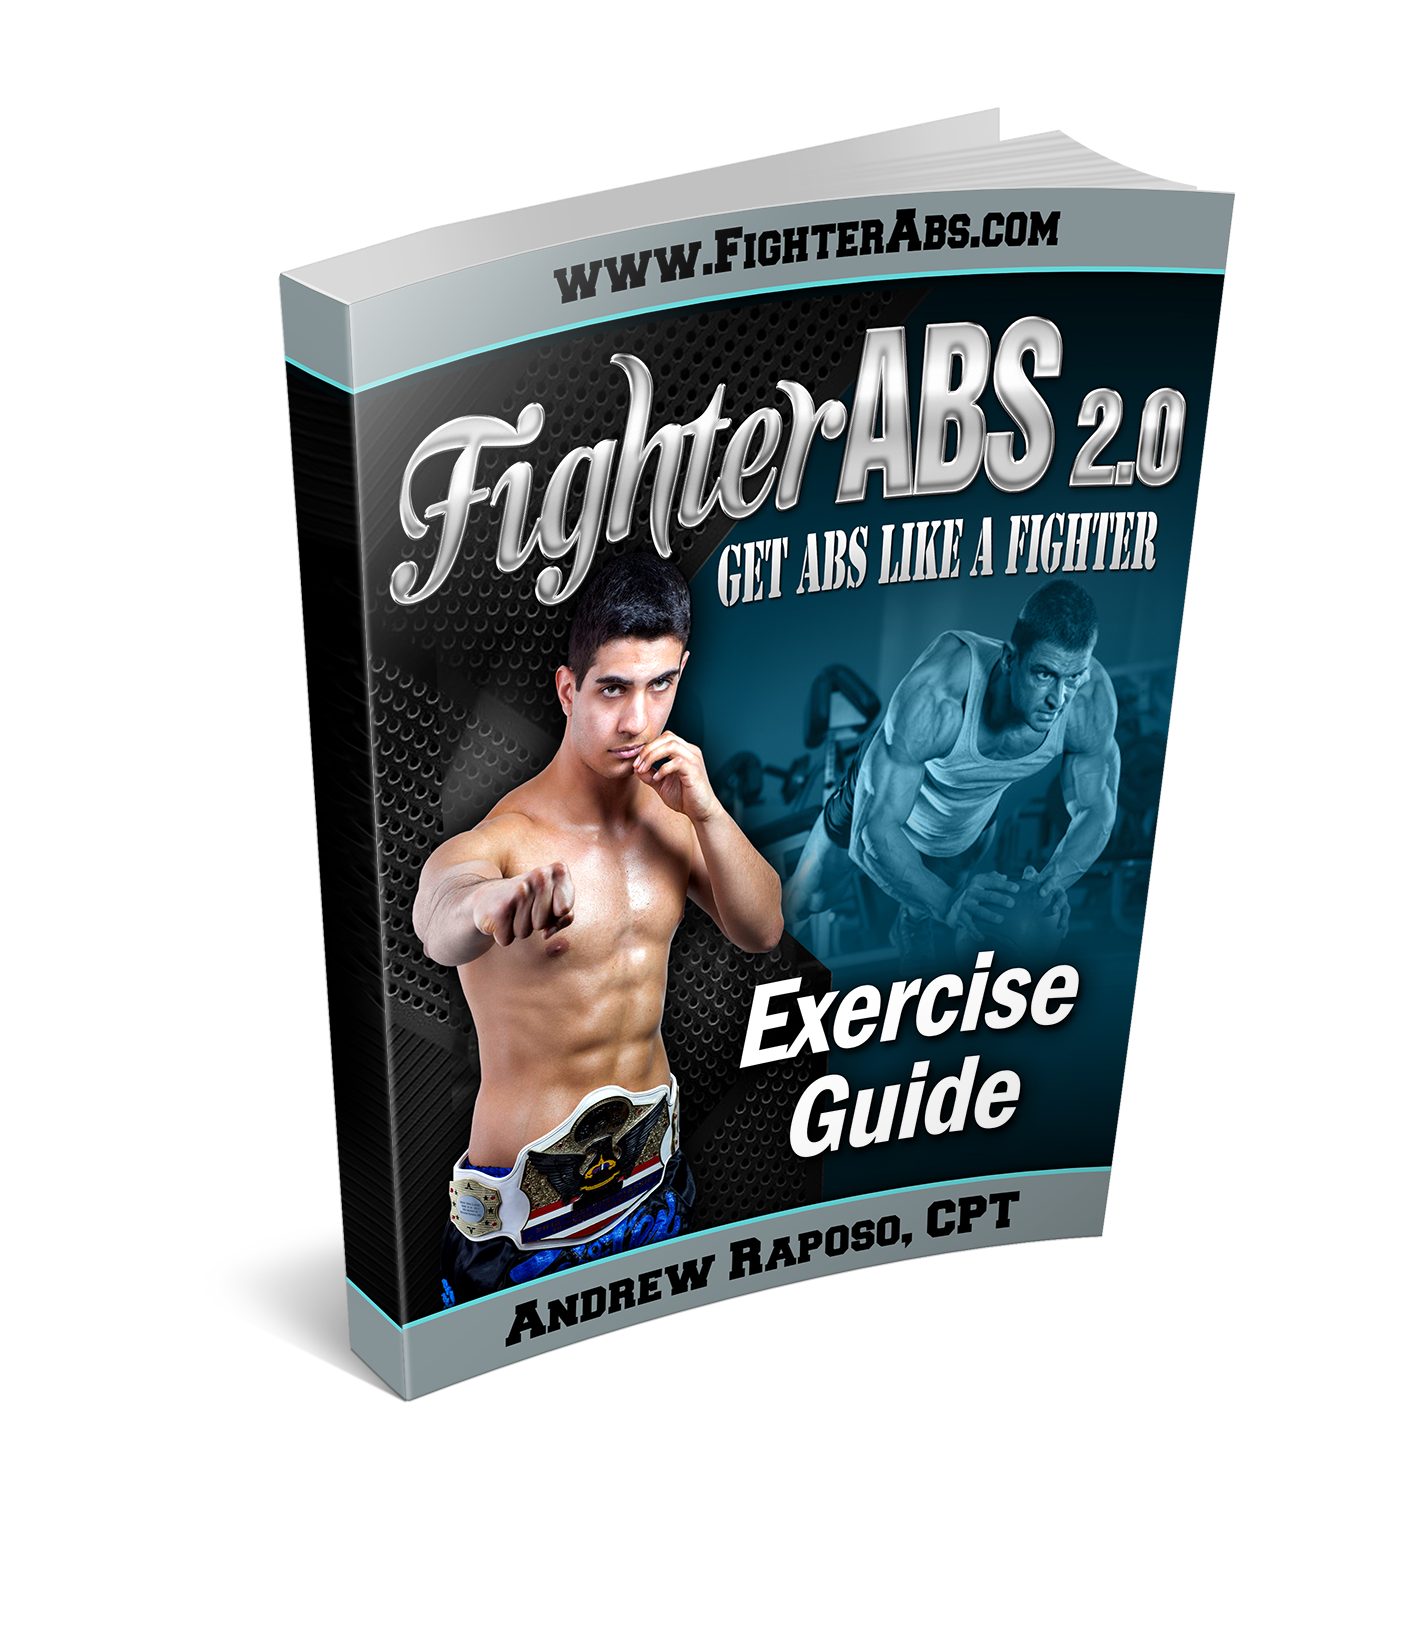 A Fitness Fighters Guide: FighterAbs.com